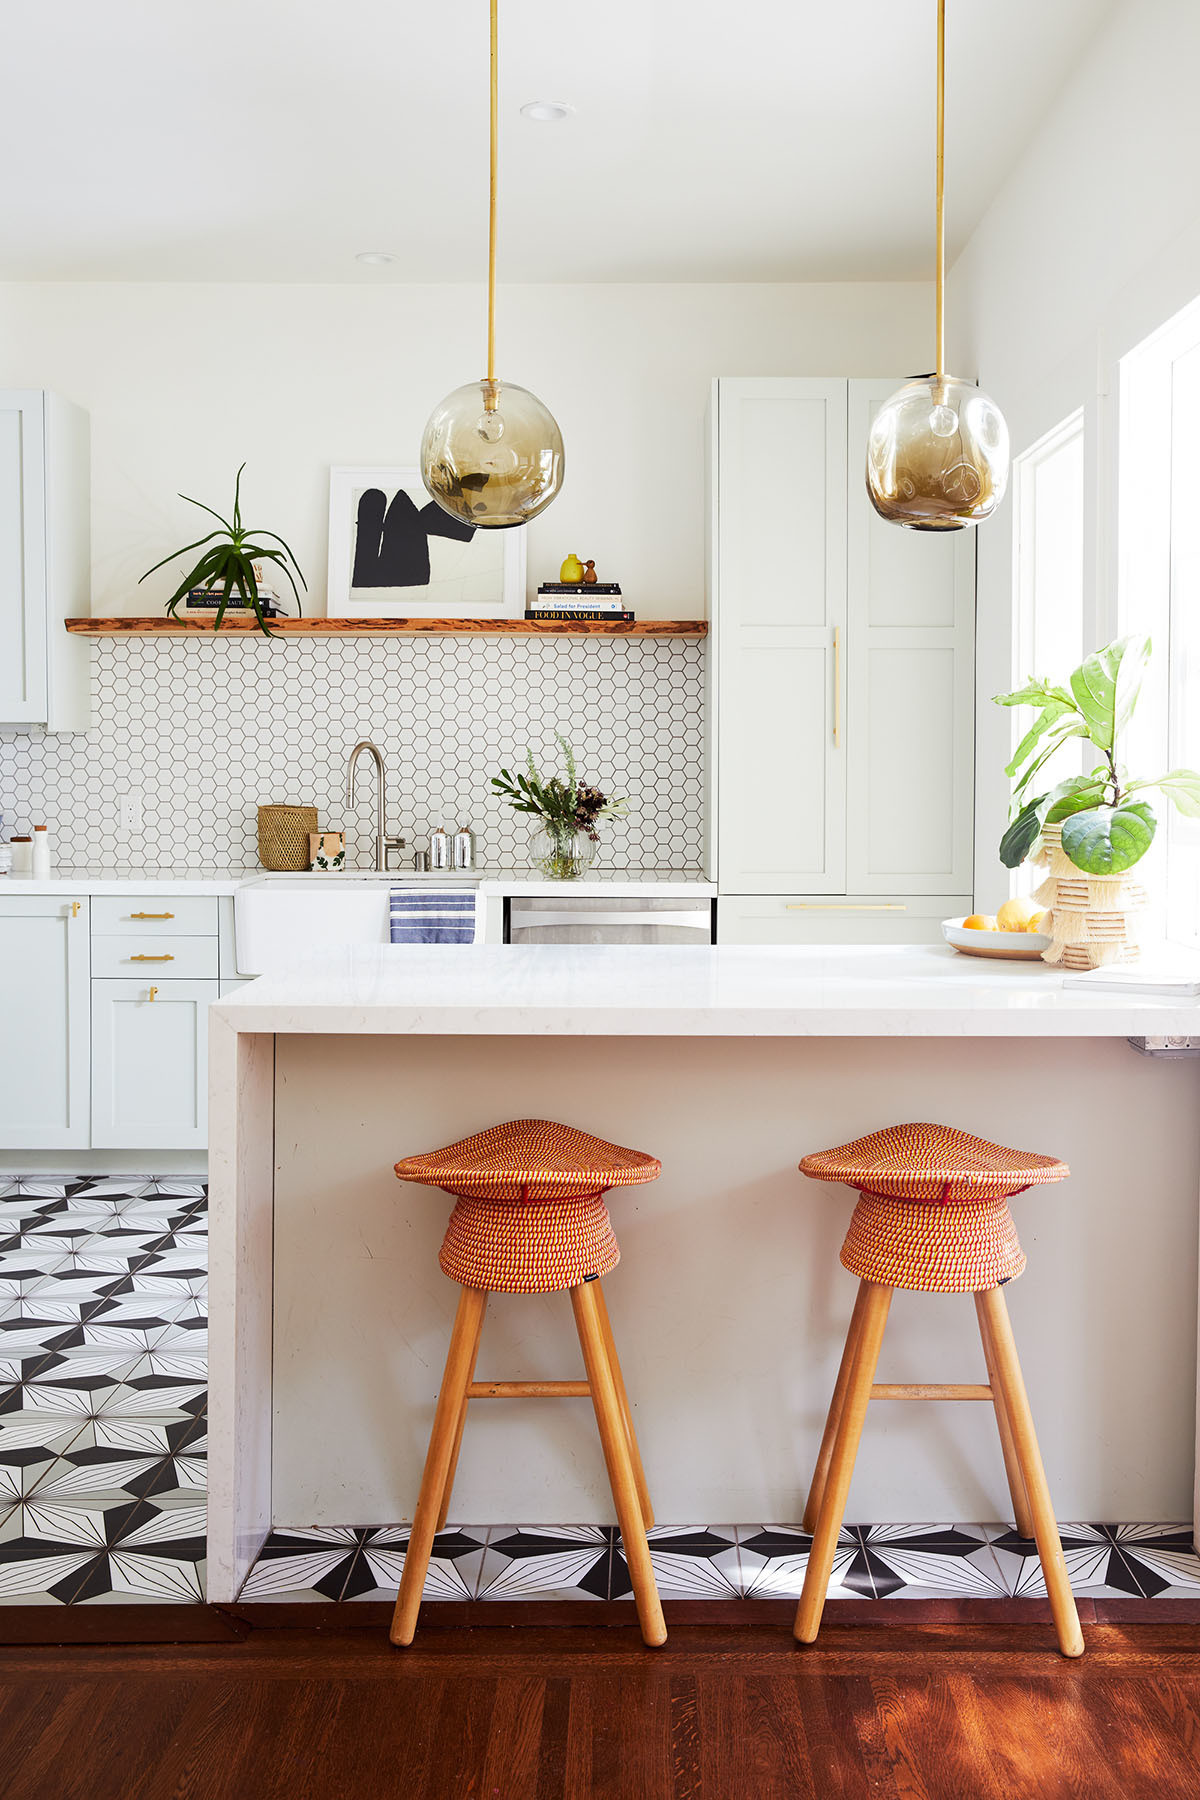 The couple's modern family-style kitchen.  | The Tile Shop Backsplash IKEA Cabinets | Farrow & Ball Cabinet Color | Semihandmade Fronts | Fireclay Tiles | Samsung Fridge | High Fashion Home Pendant Lights | Heurlier Cimolai Frederic Art | Umbra Counter Stools.